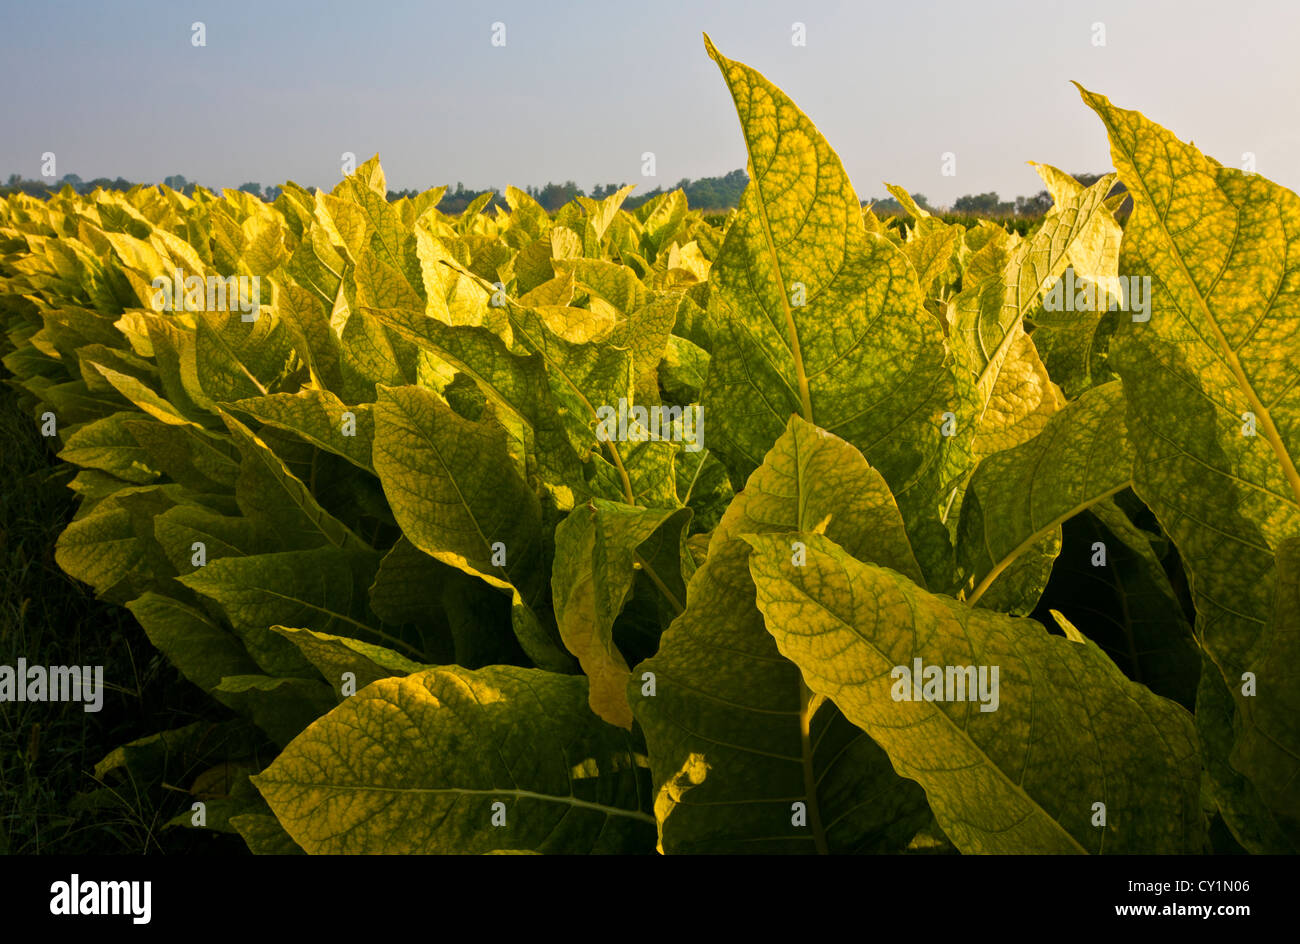 Closeup tobacco leaves on an Amish farm in the Amish country,  Lancaster County, Pennsylvania, USA, abstract pov - Stock Image